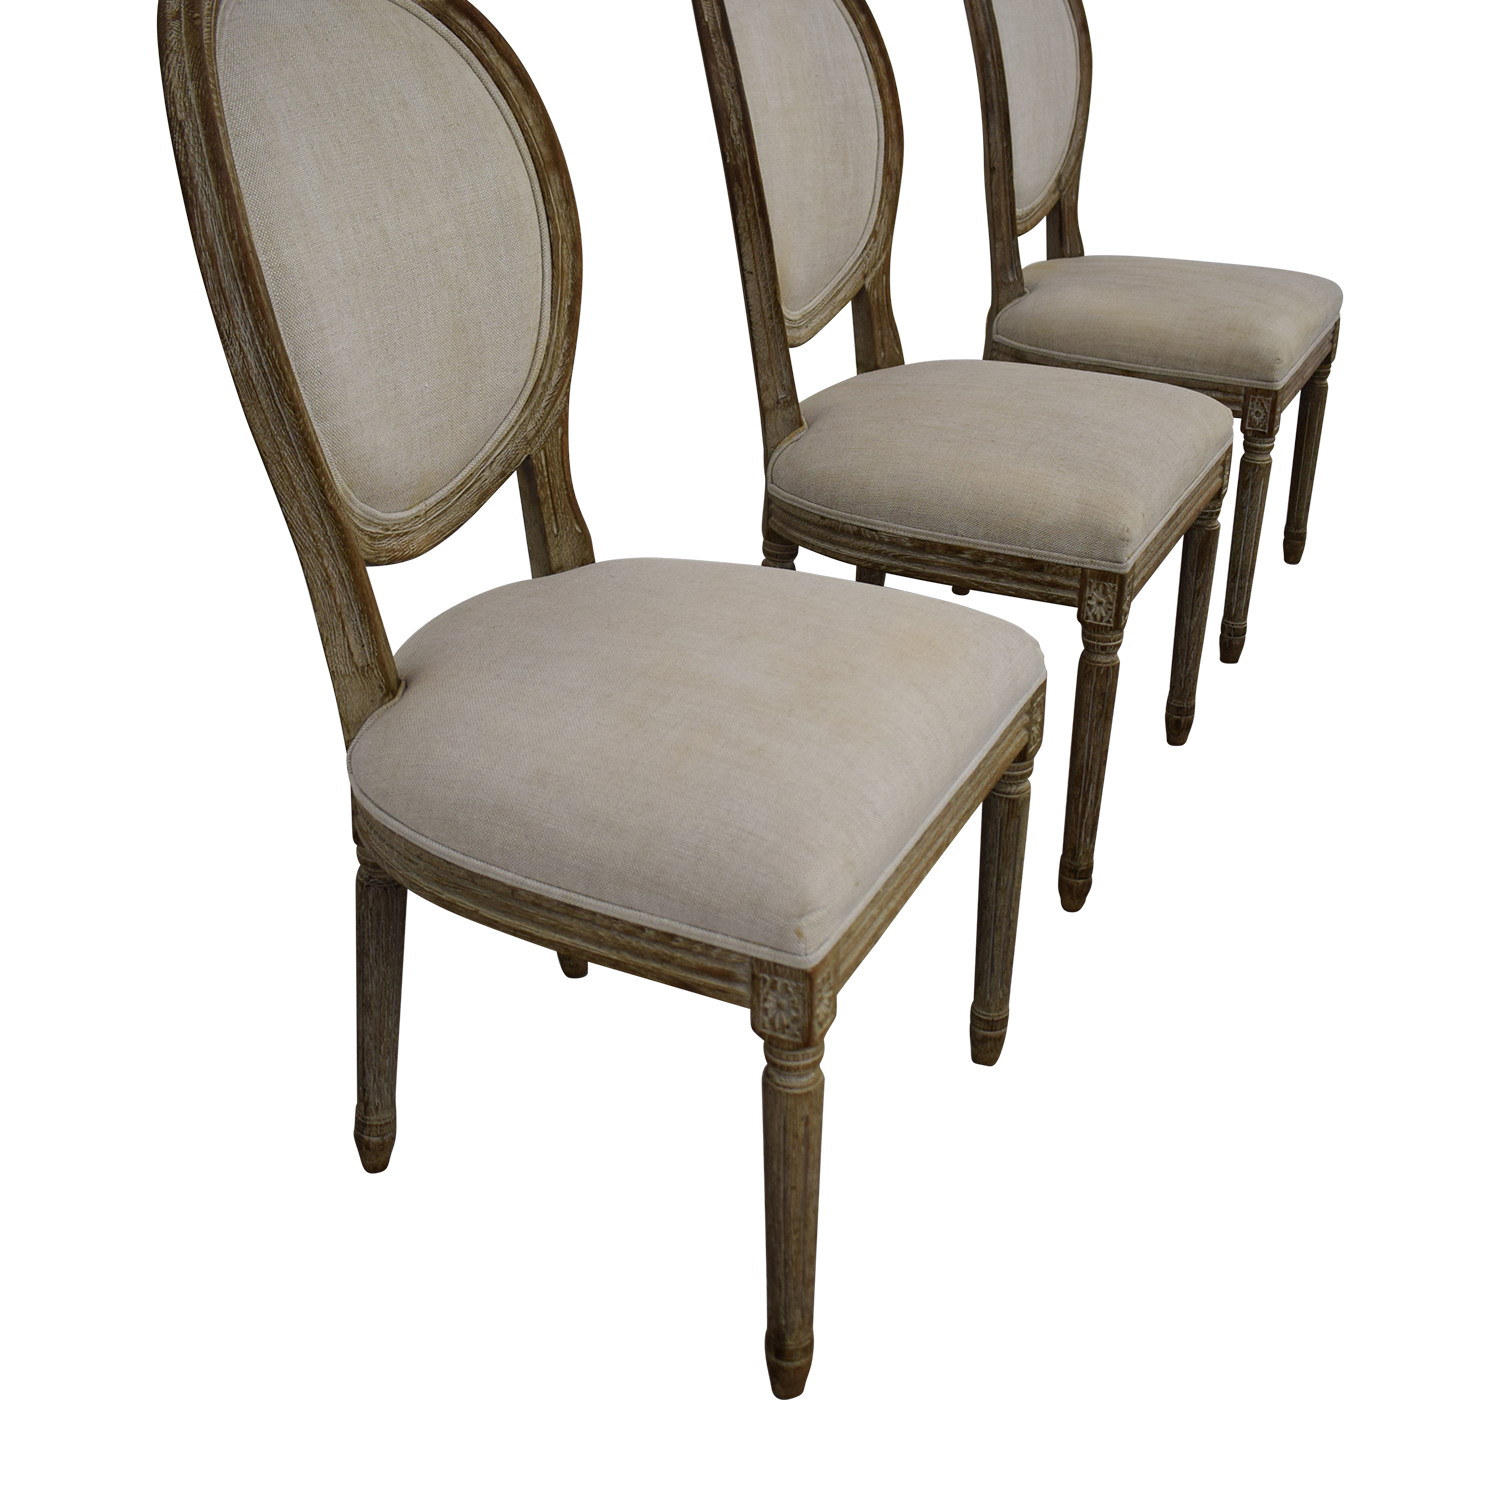 buy Restoration Hardware Vintage French Round Chair Restoration Hardware